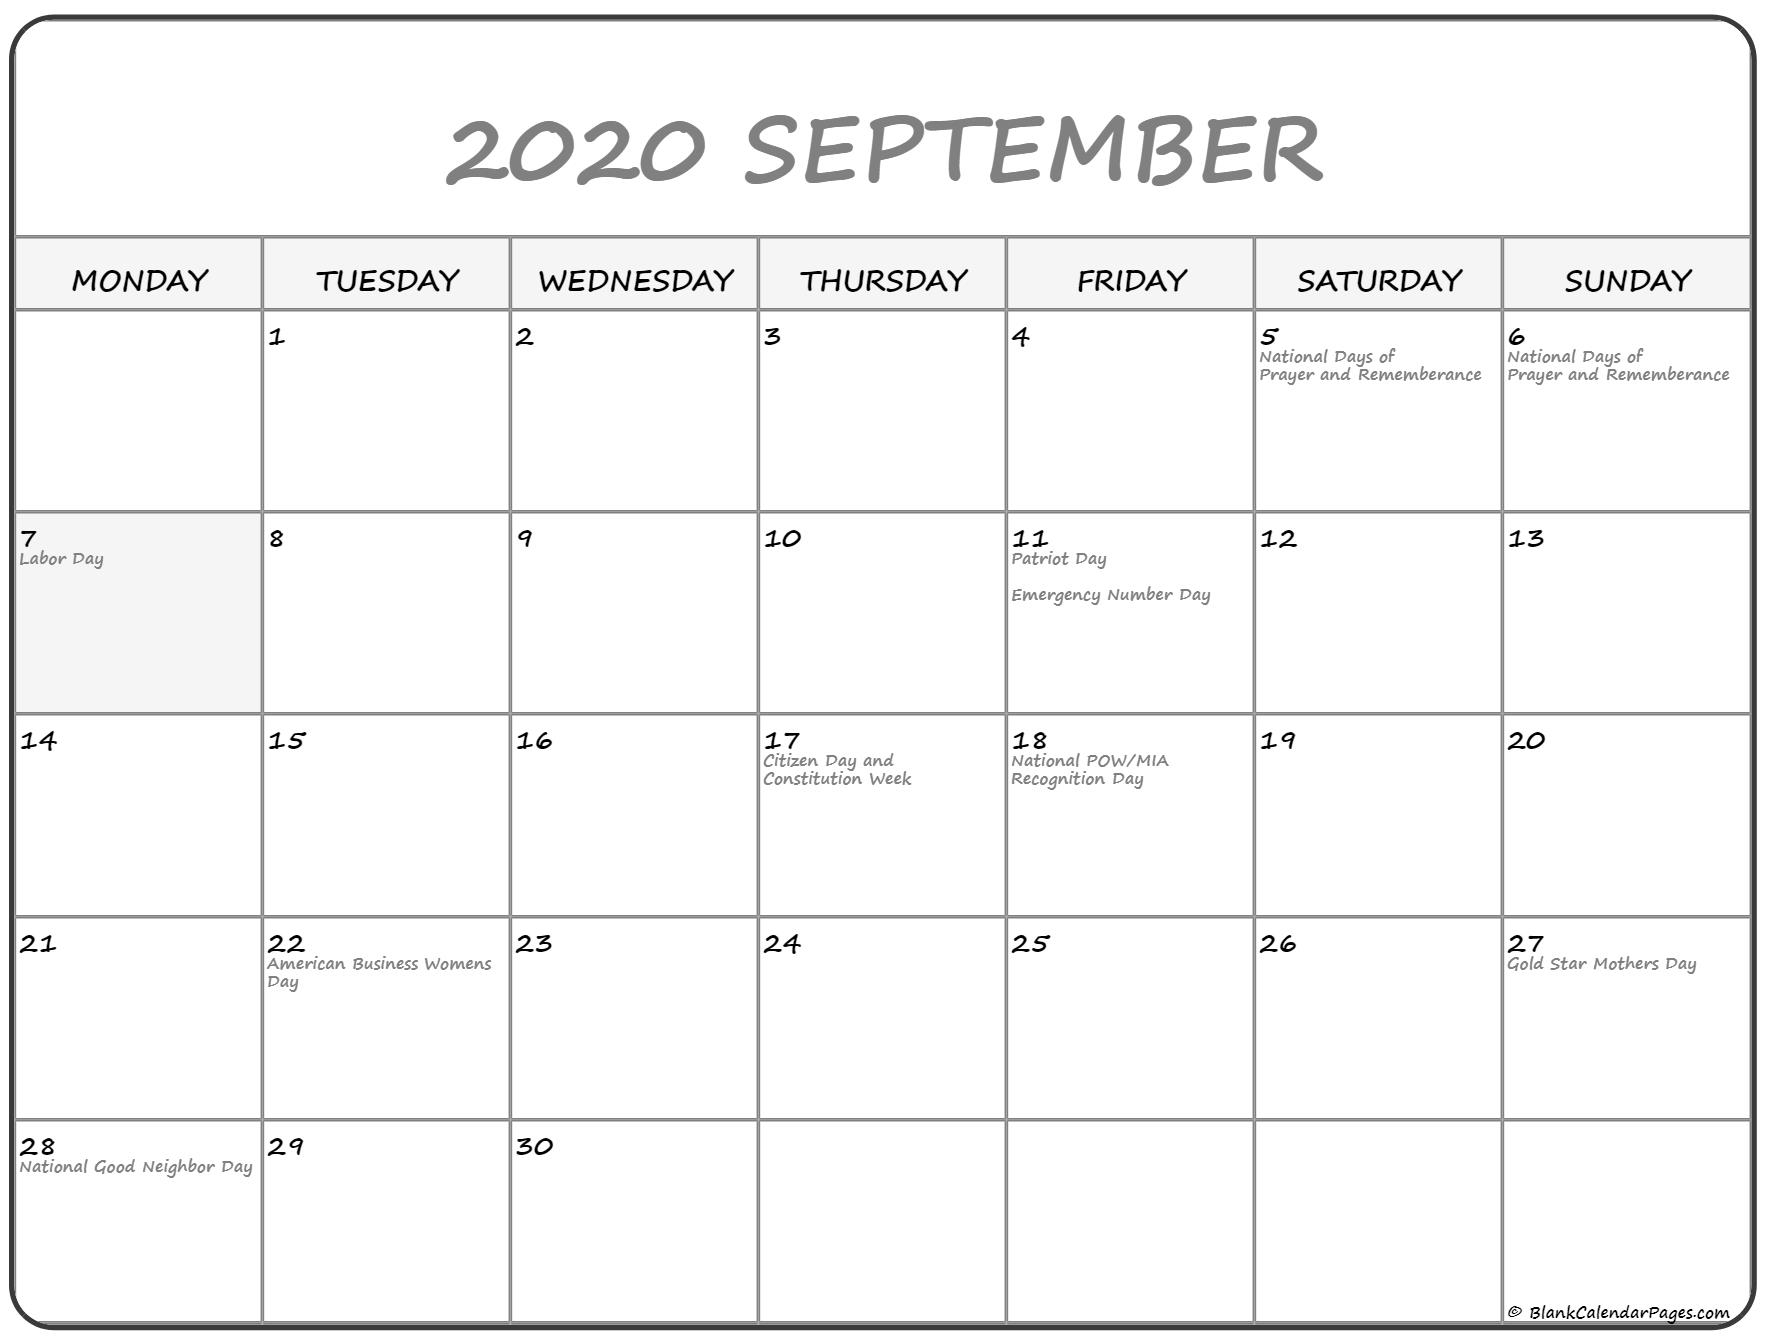 September 2020 Monday Calendar | Monday To Sunday